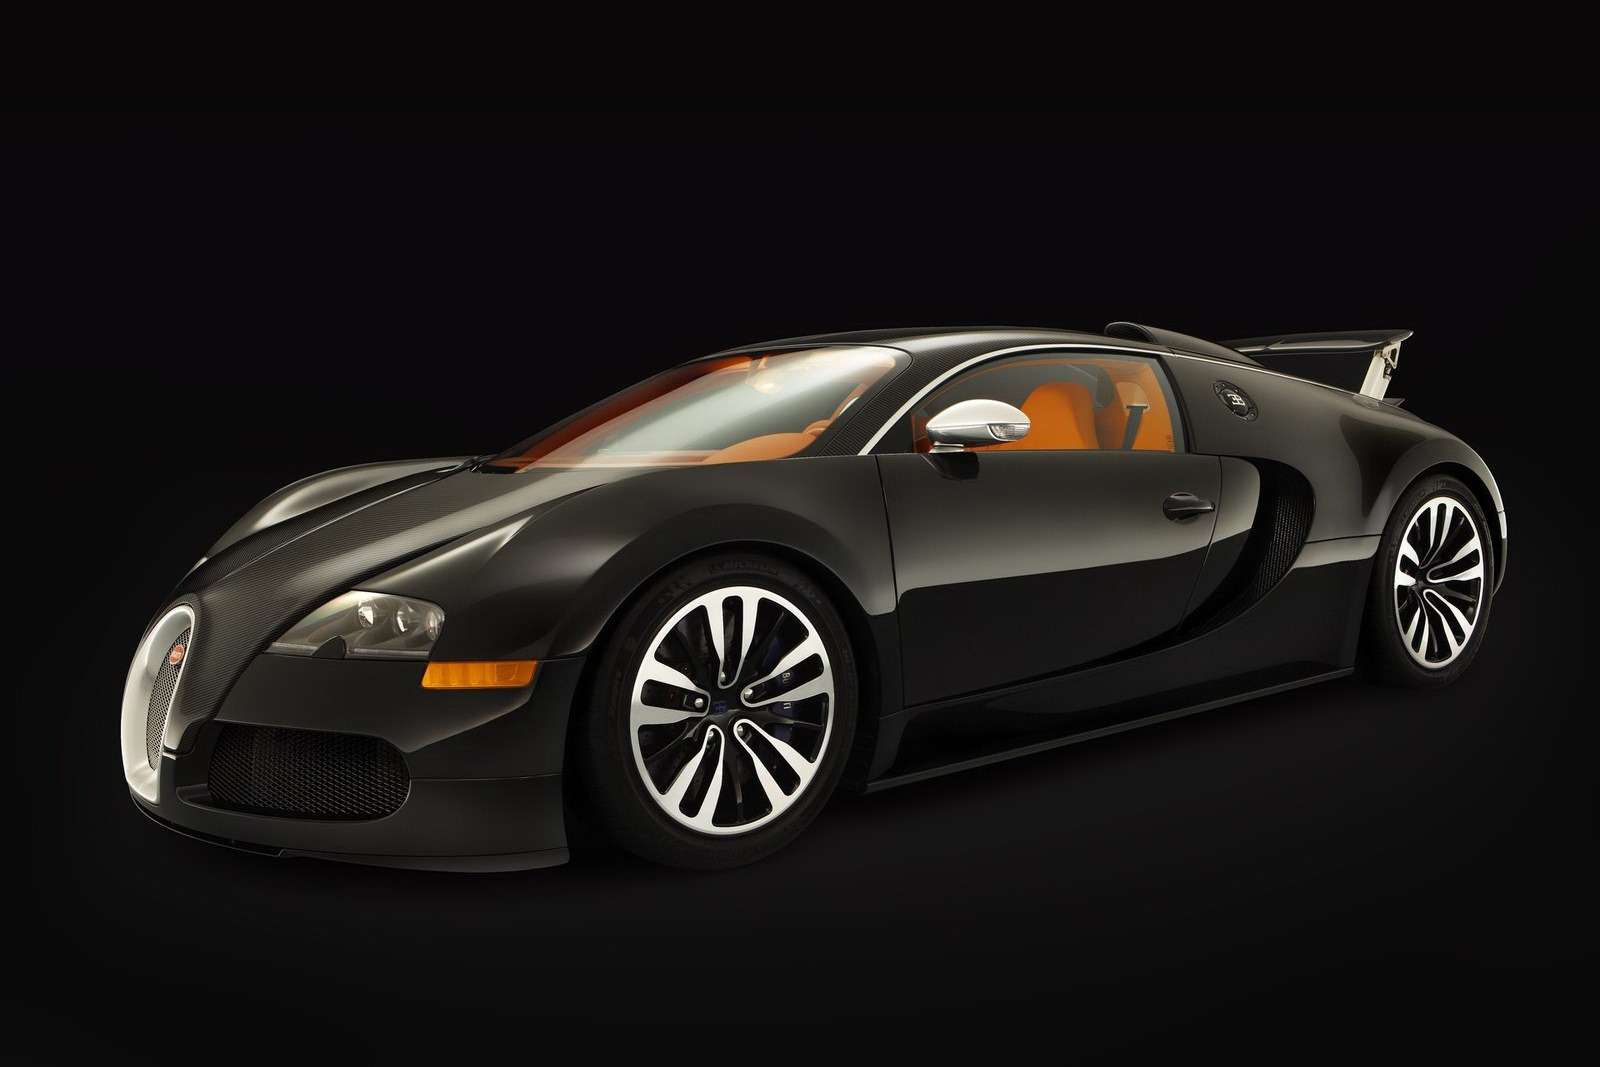 bugatti teaser of latest example of exceptional performance shows absolutely nothing